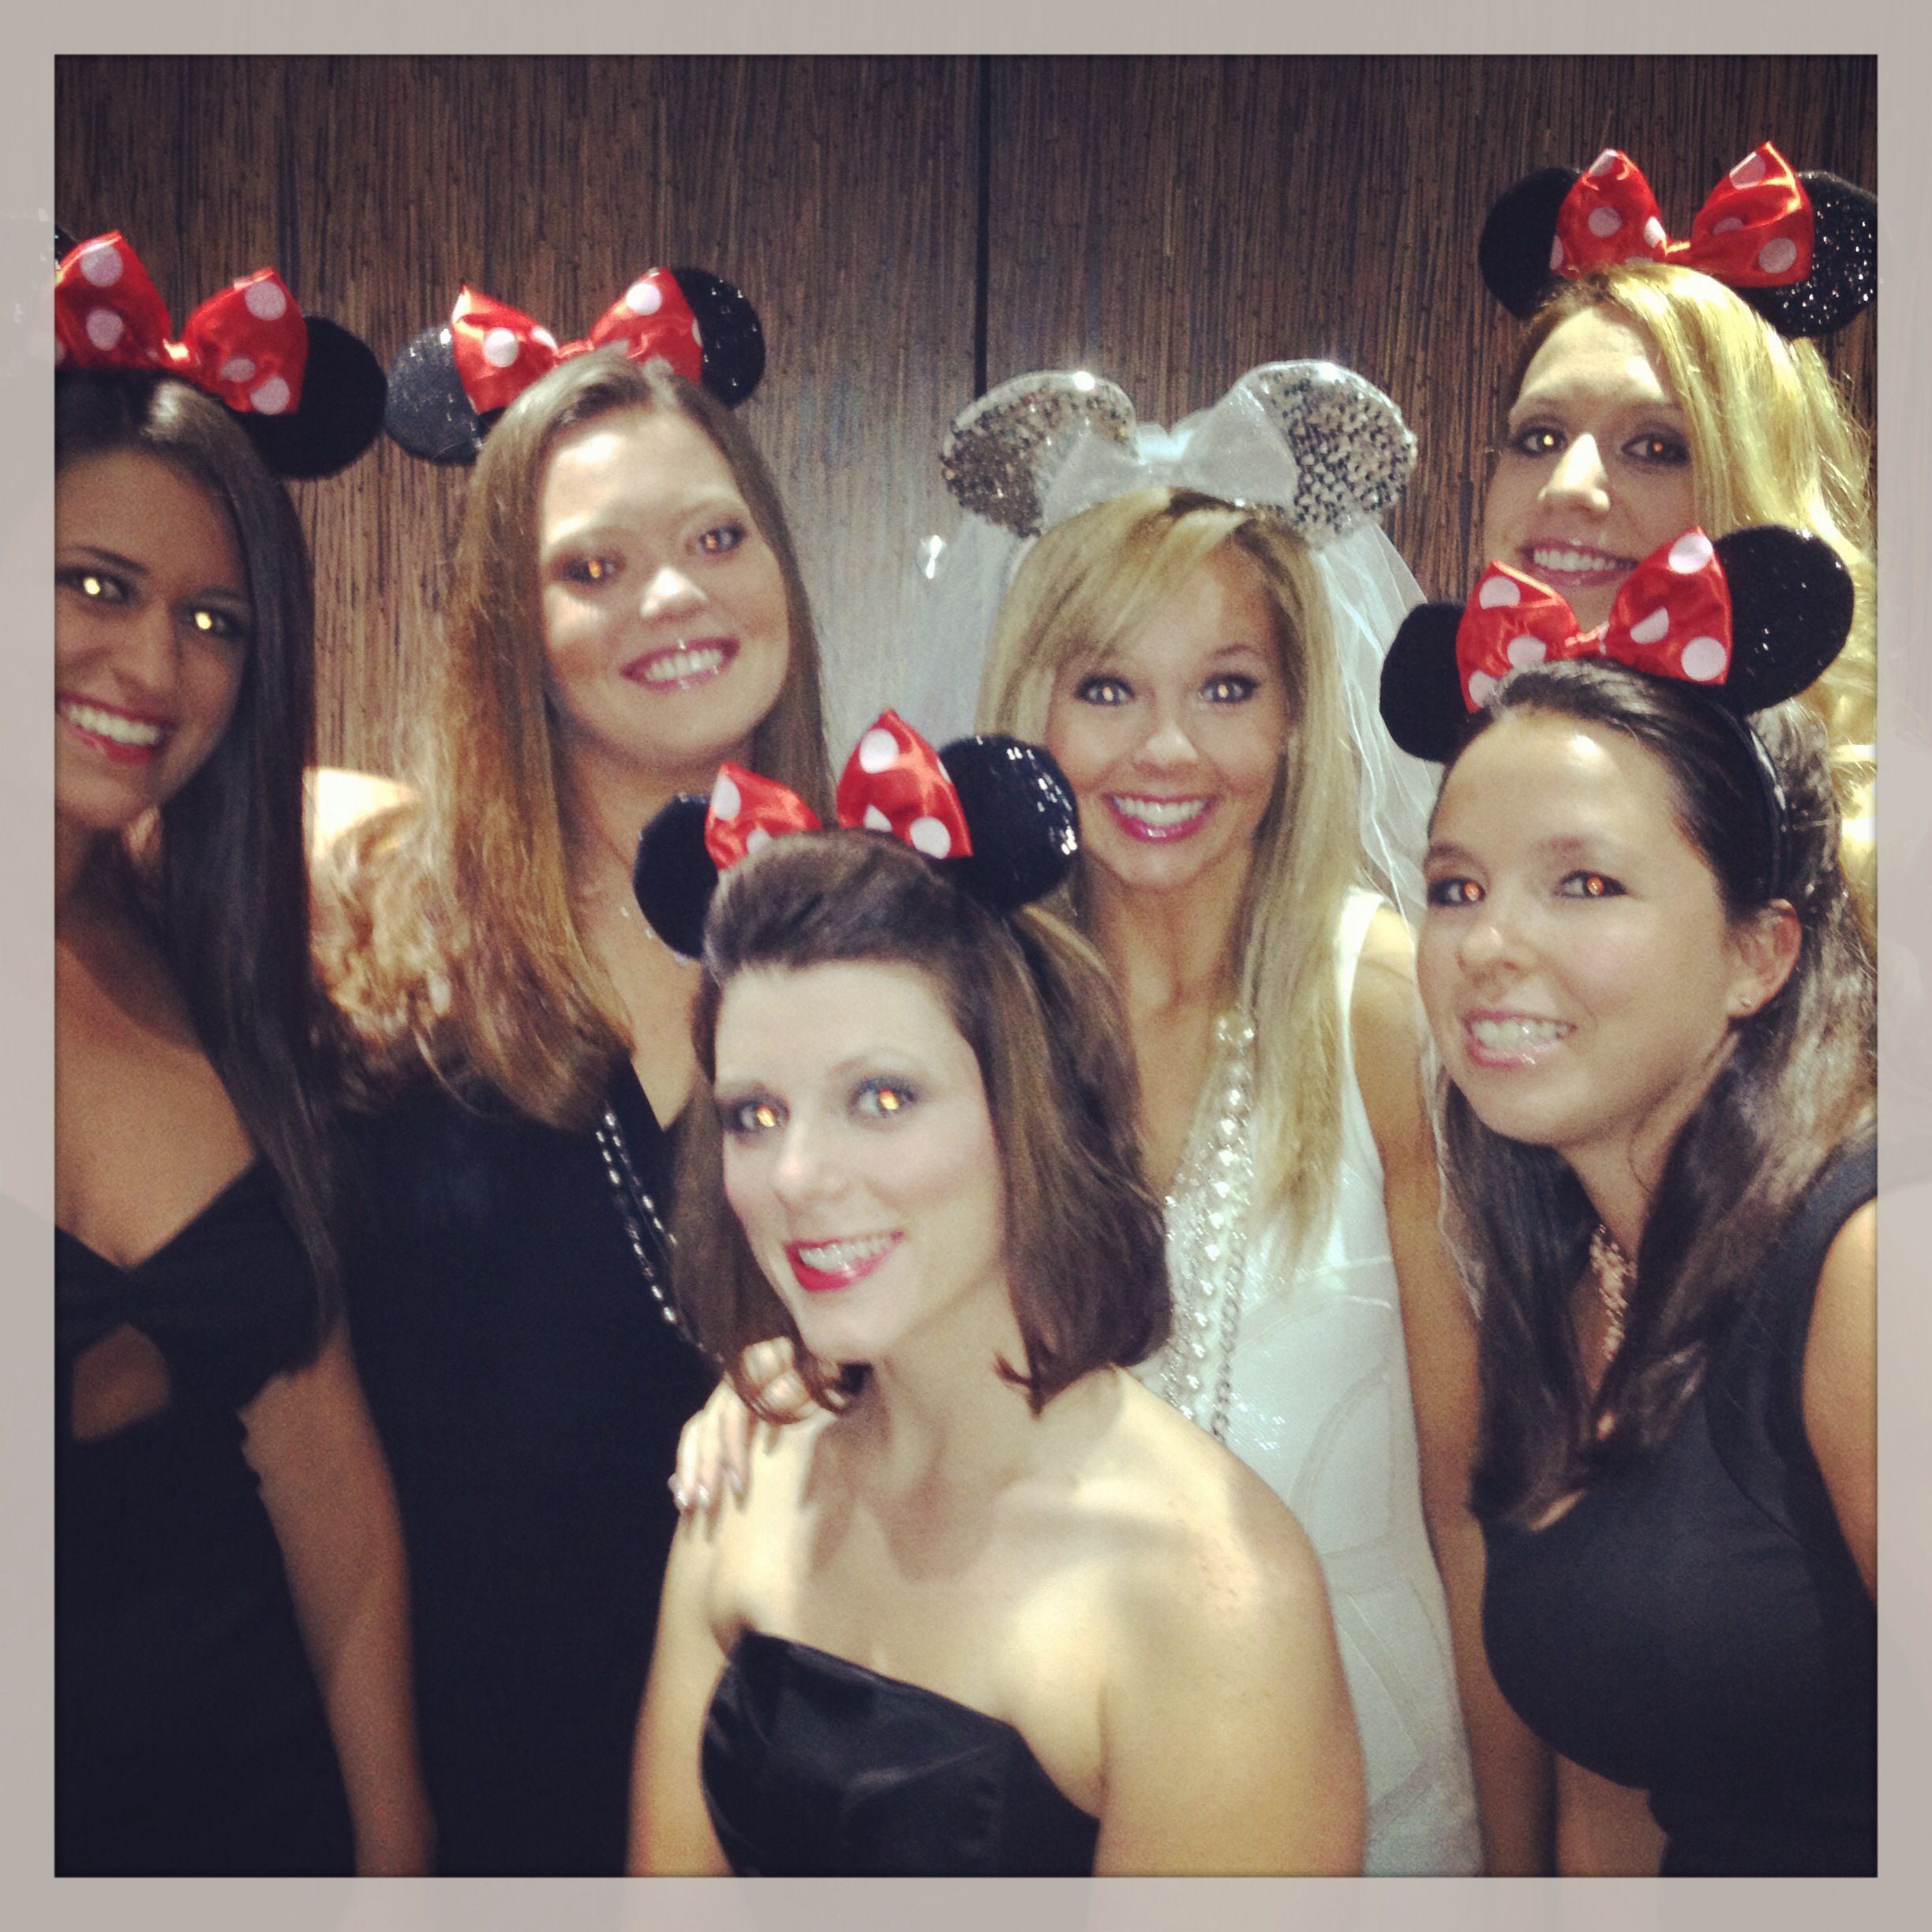 Disney bachelorette. Mickey Mouse ears. Wedding bride bridesmaids princesses  #bakereverafter #minniebouttobemad